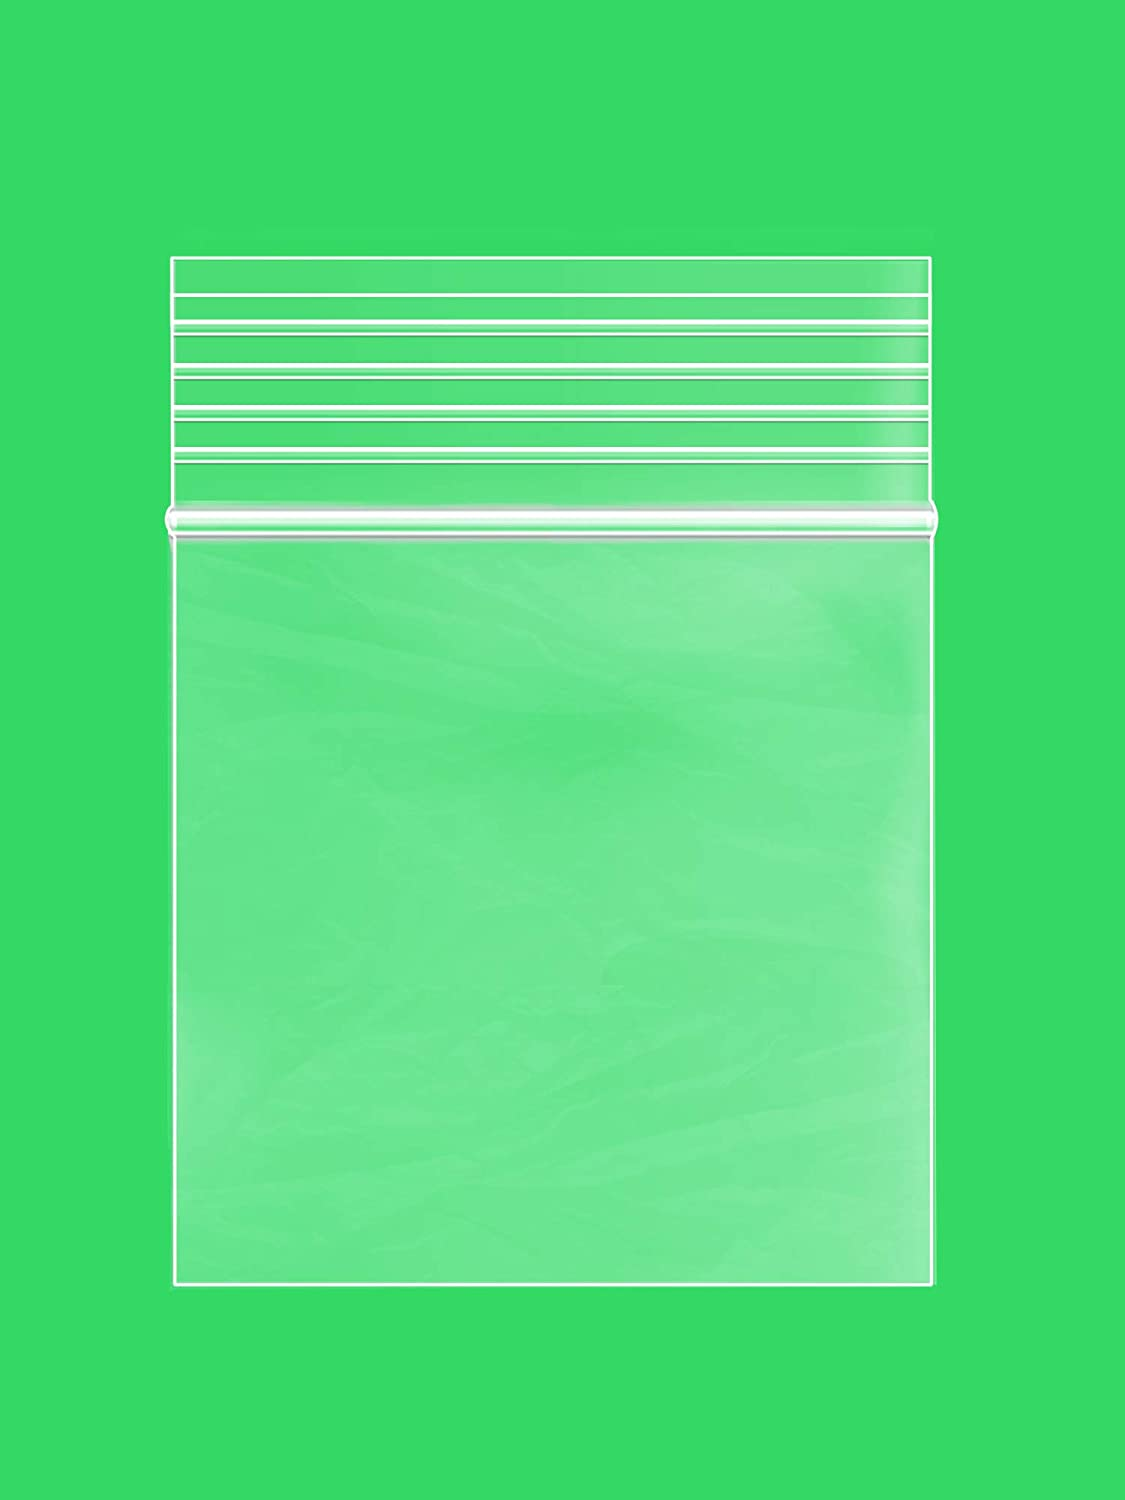 1.25 x 1.25 inches, 2Mil Clear Reclosable Zip Lock Bags, case of 1,000 GPI Brand